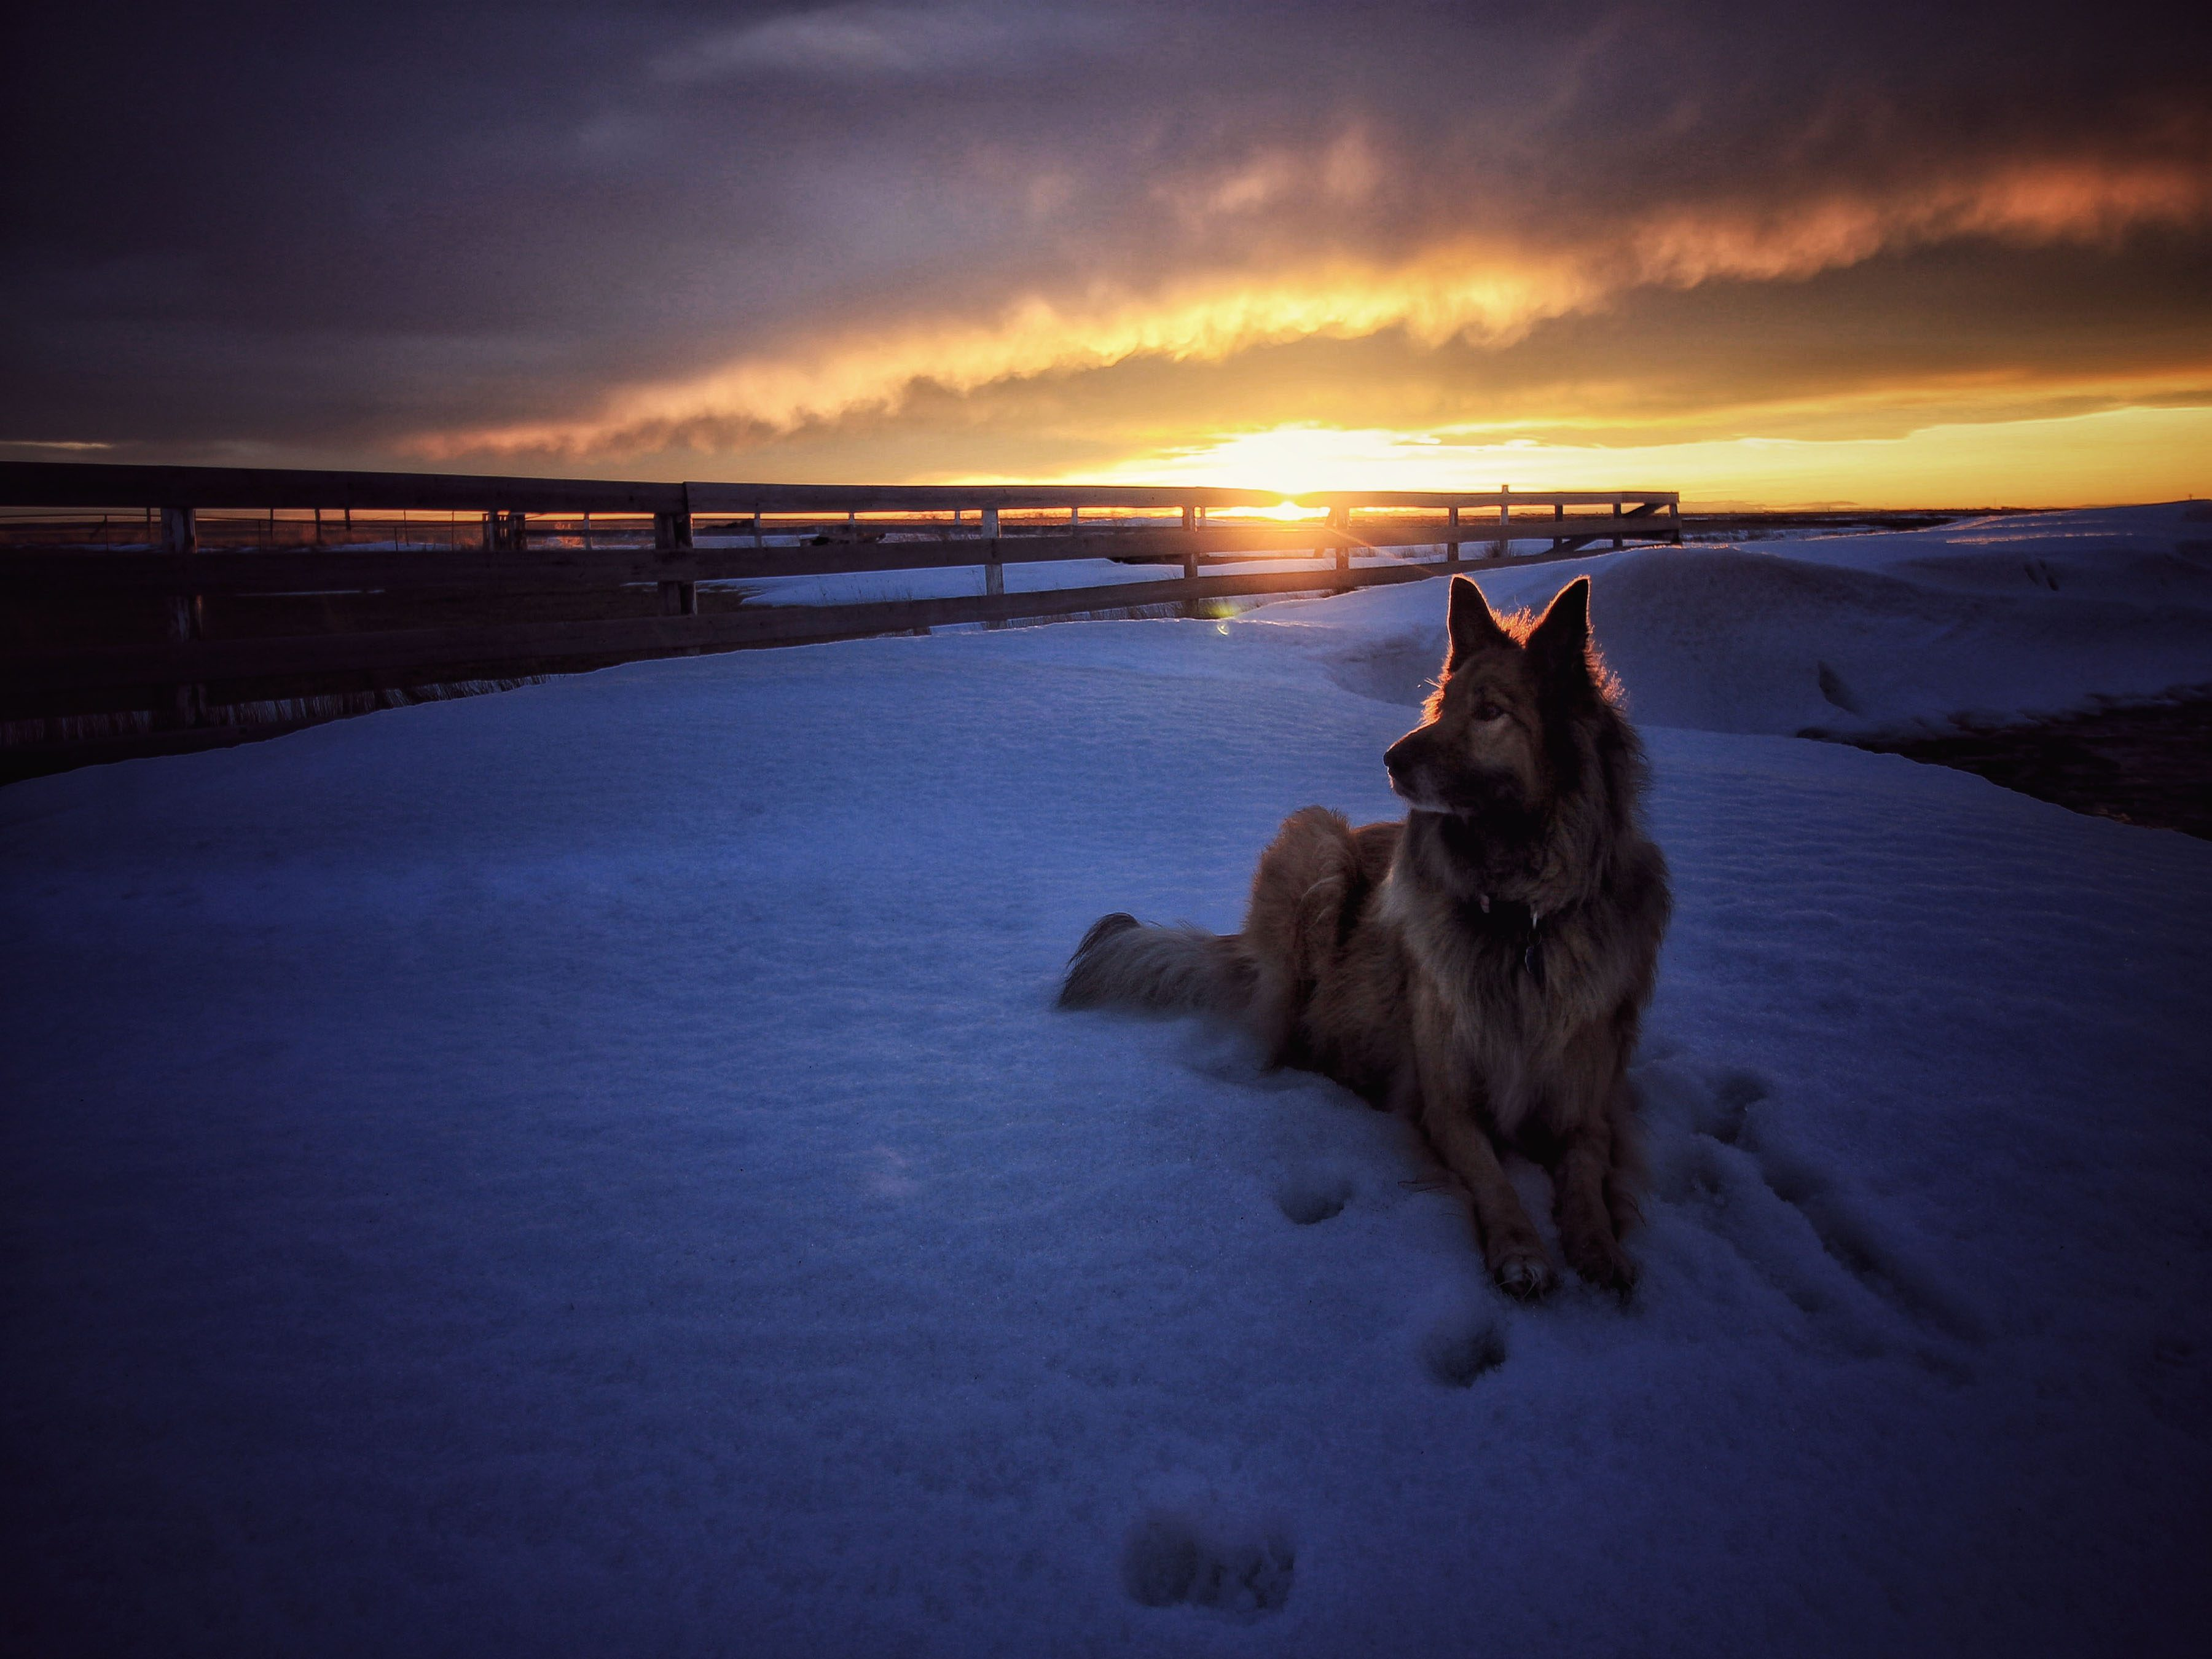 Dog on snowy field against a sunset